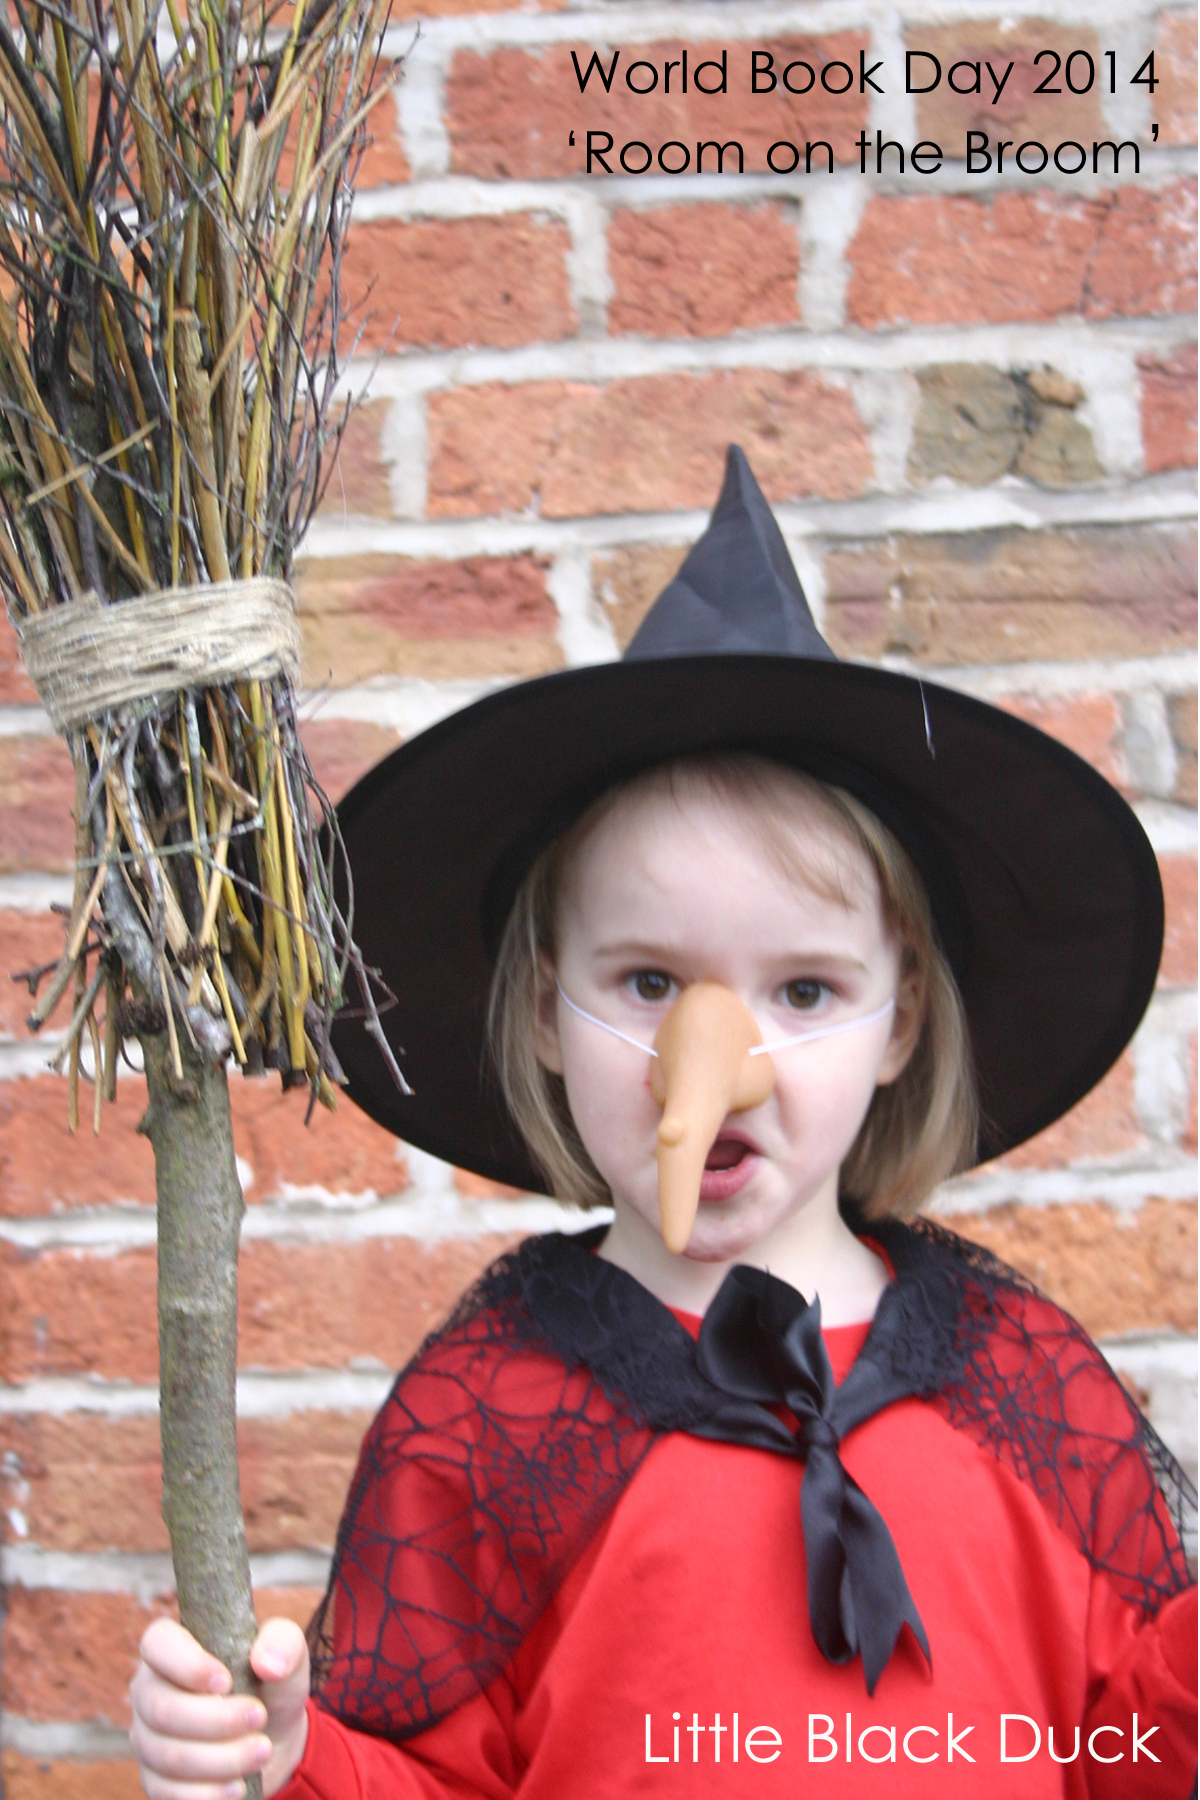 World Book Day 2014 :: Room on the Broom - Little Black Duck